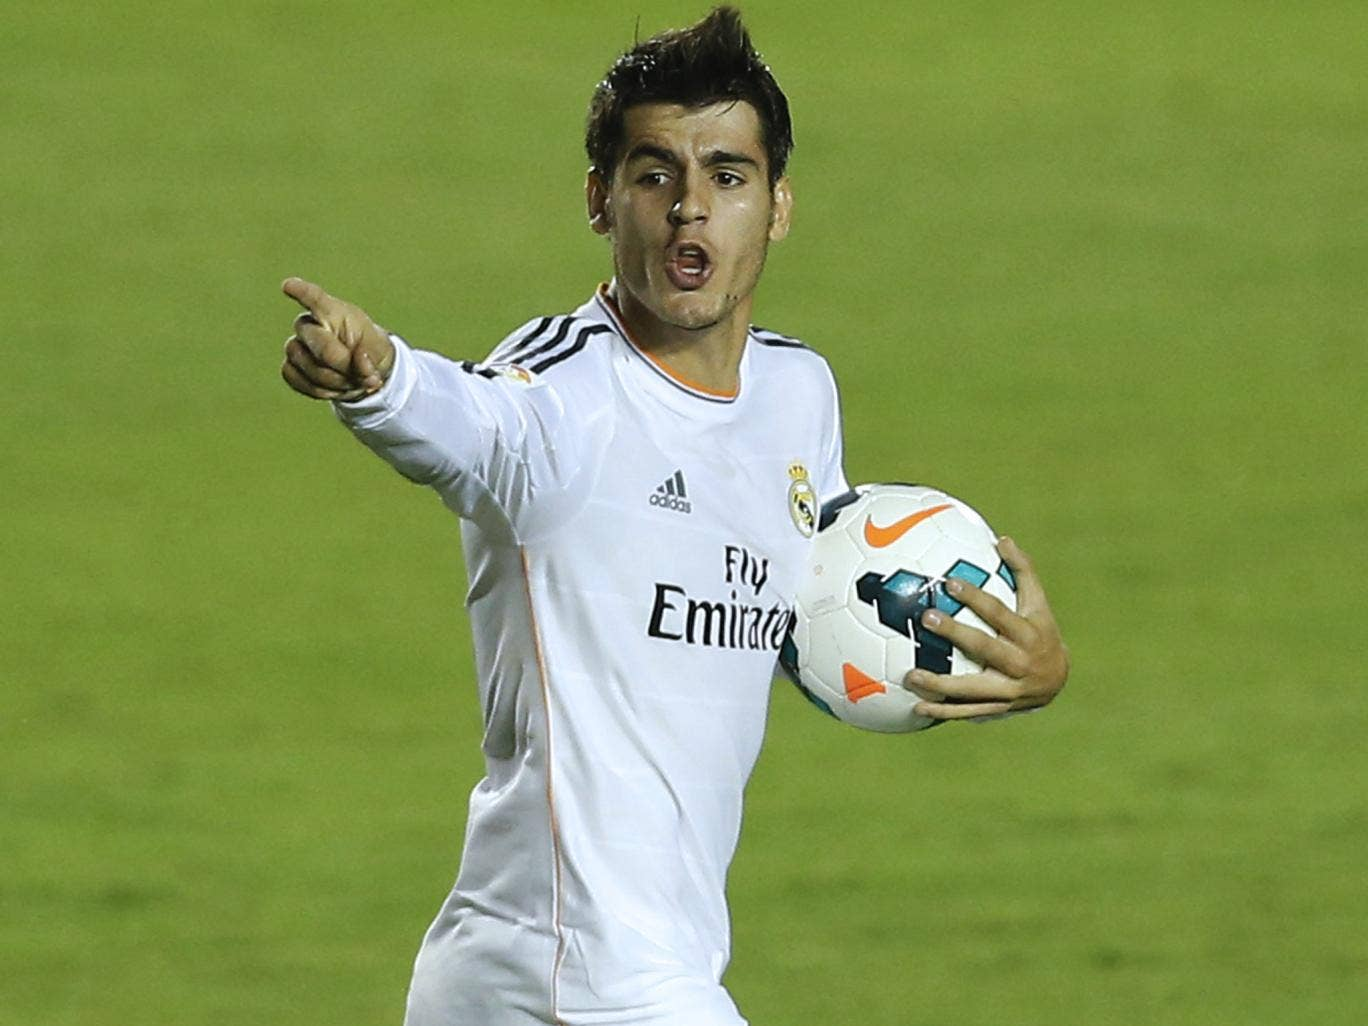 Alvaro Morata's first-team chances have been limited at Real